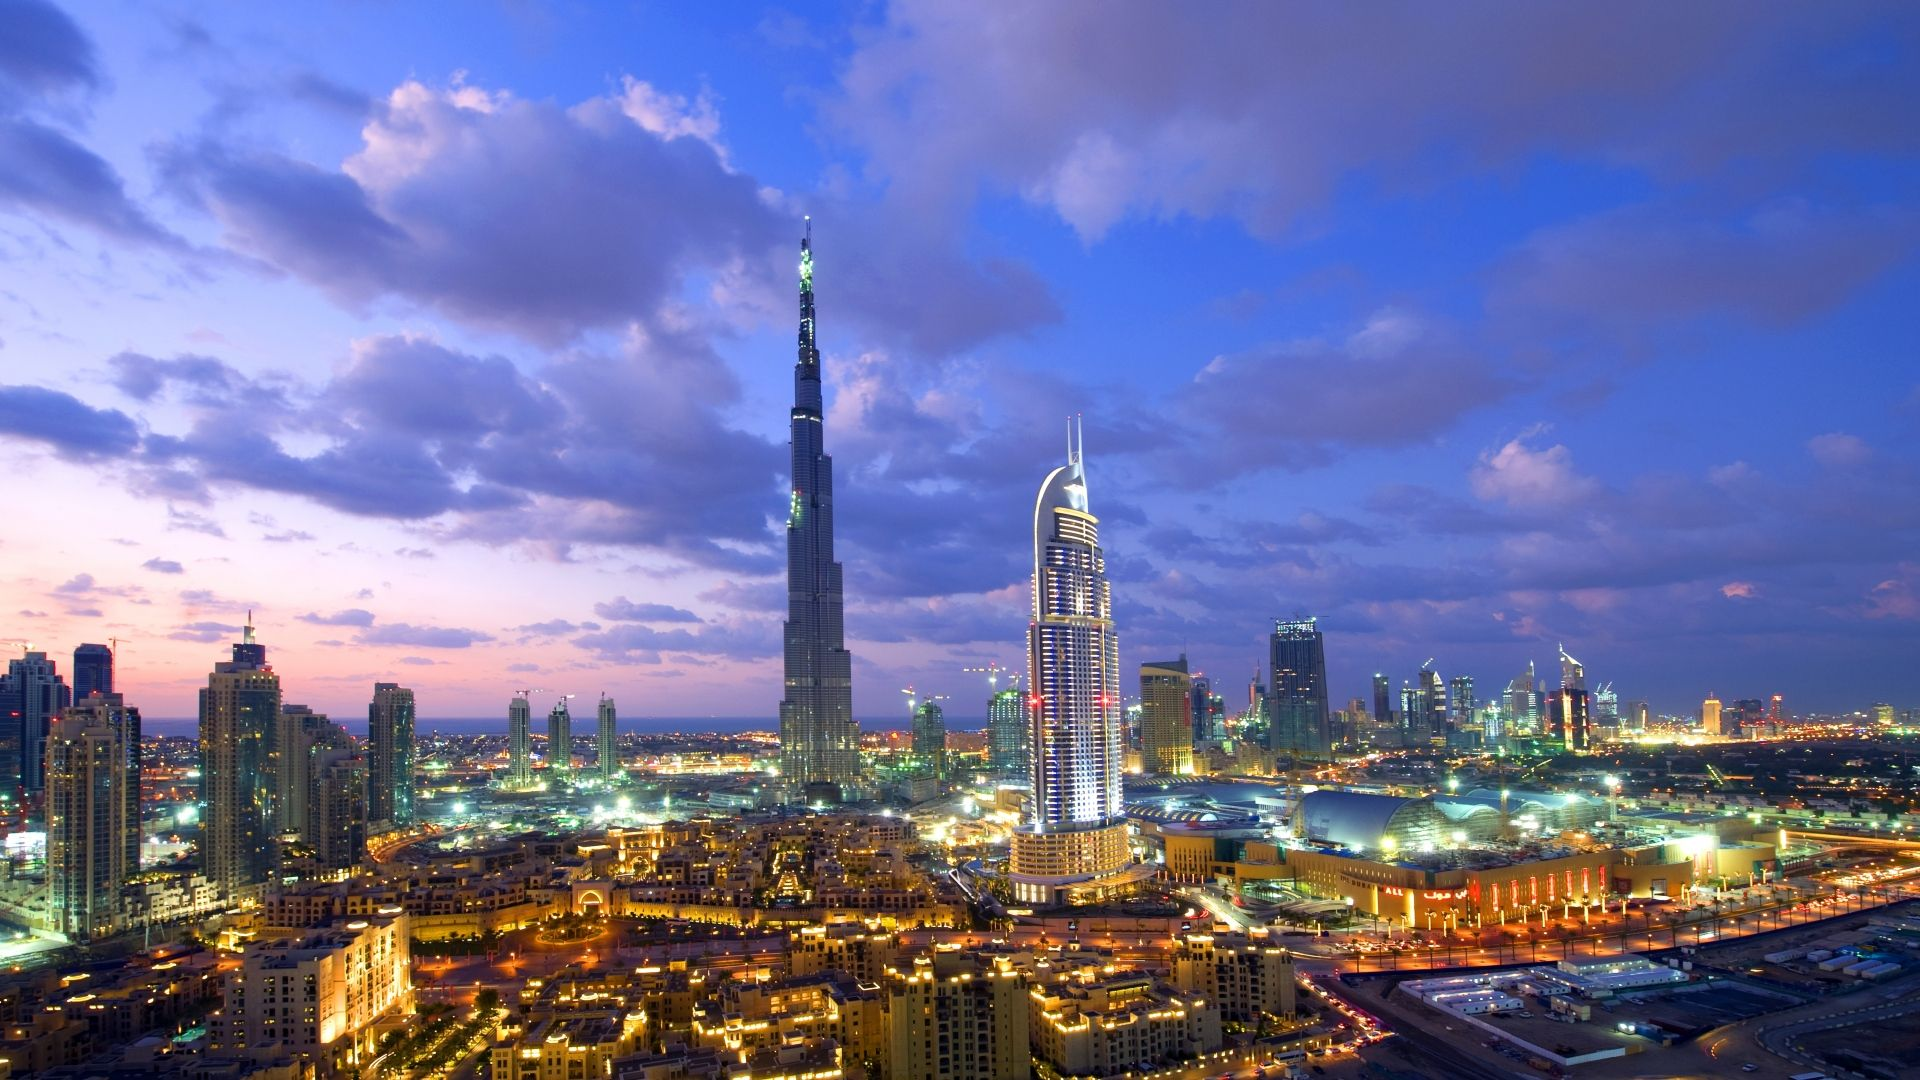 Full Hd 1080p Dubai Wallpapers Hd Desktop Backgrounds 1920x1080